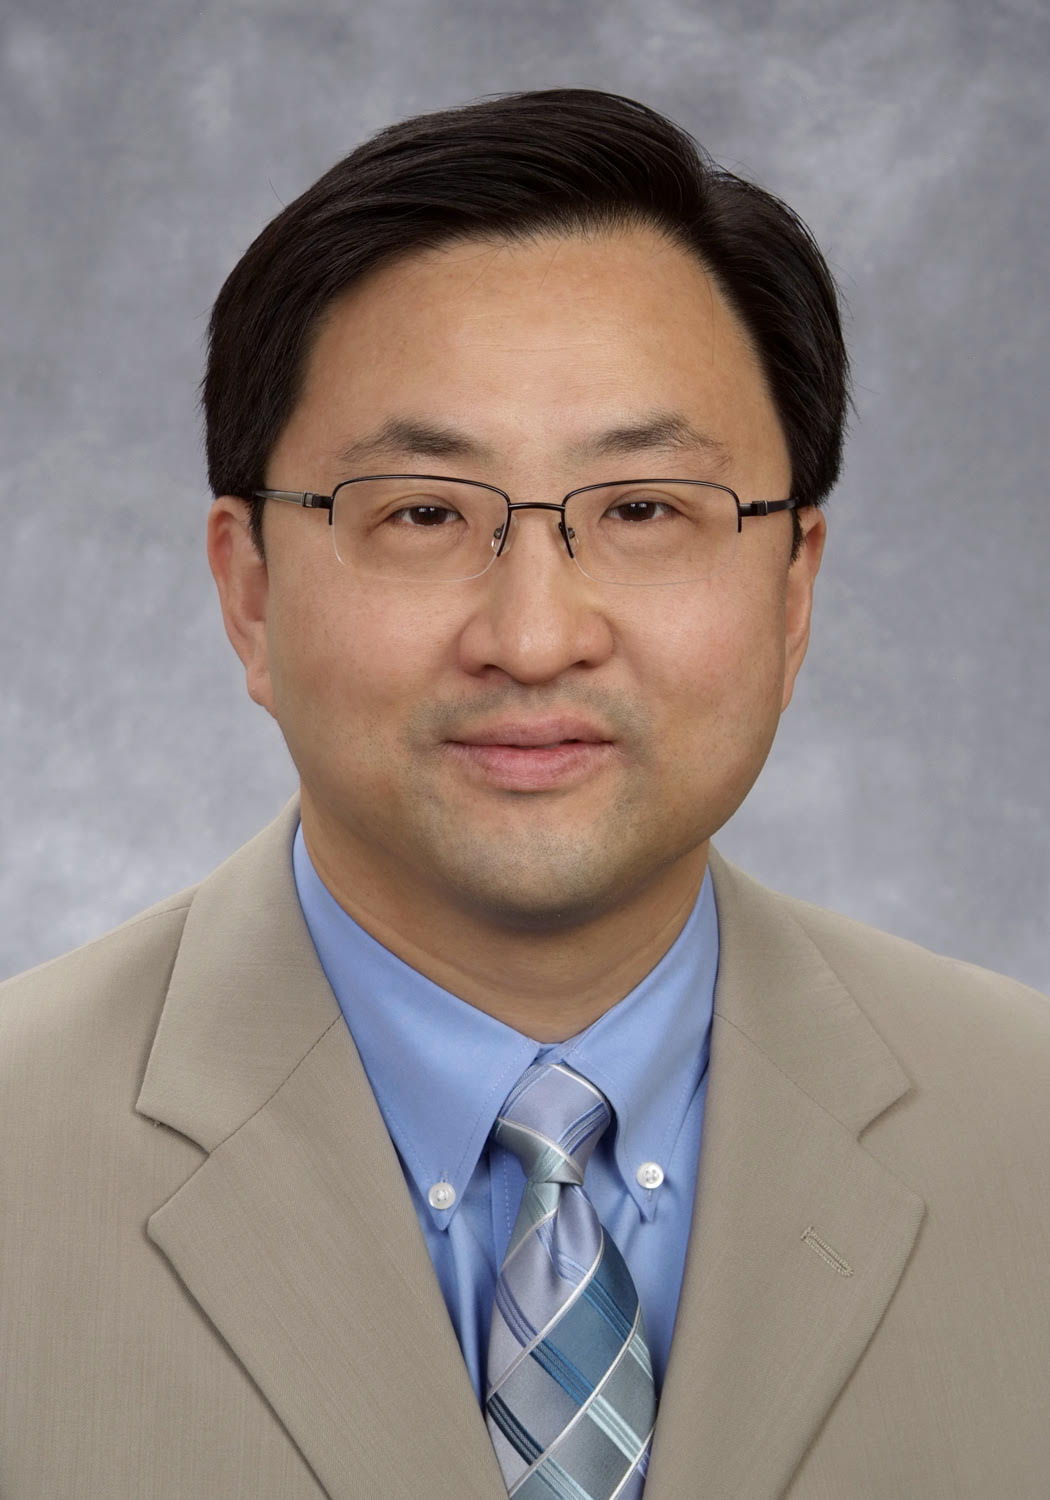 Youngsoo Cho MD, FACC